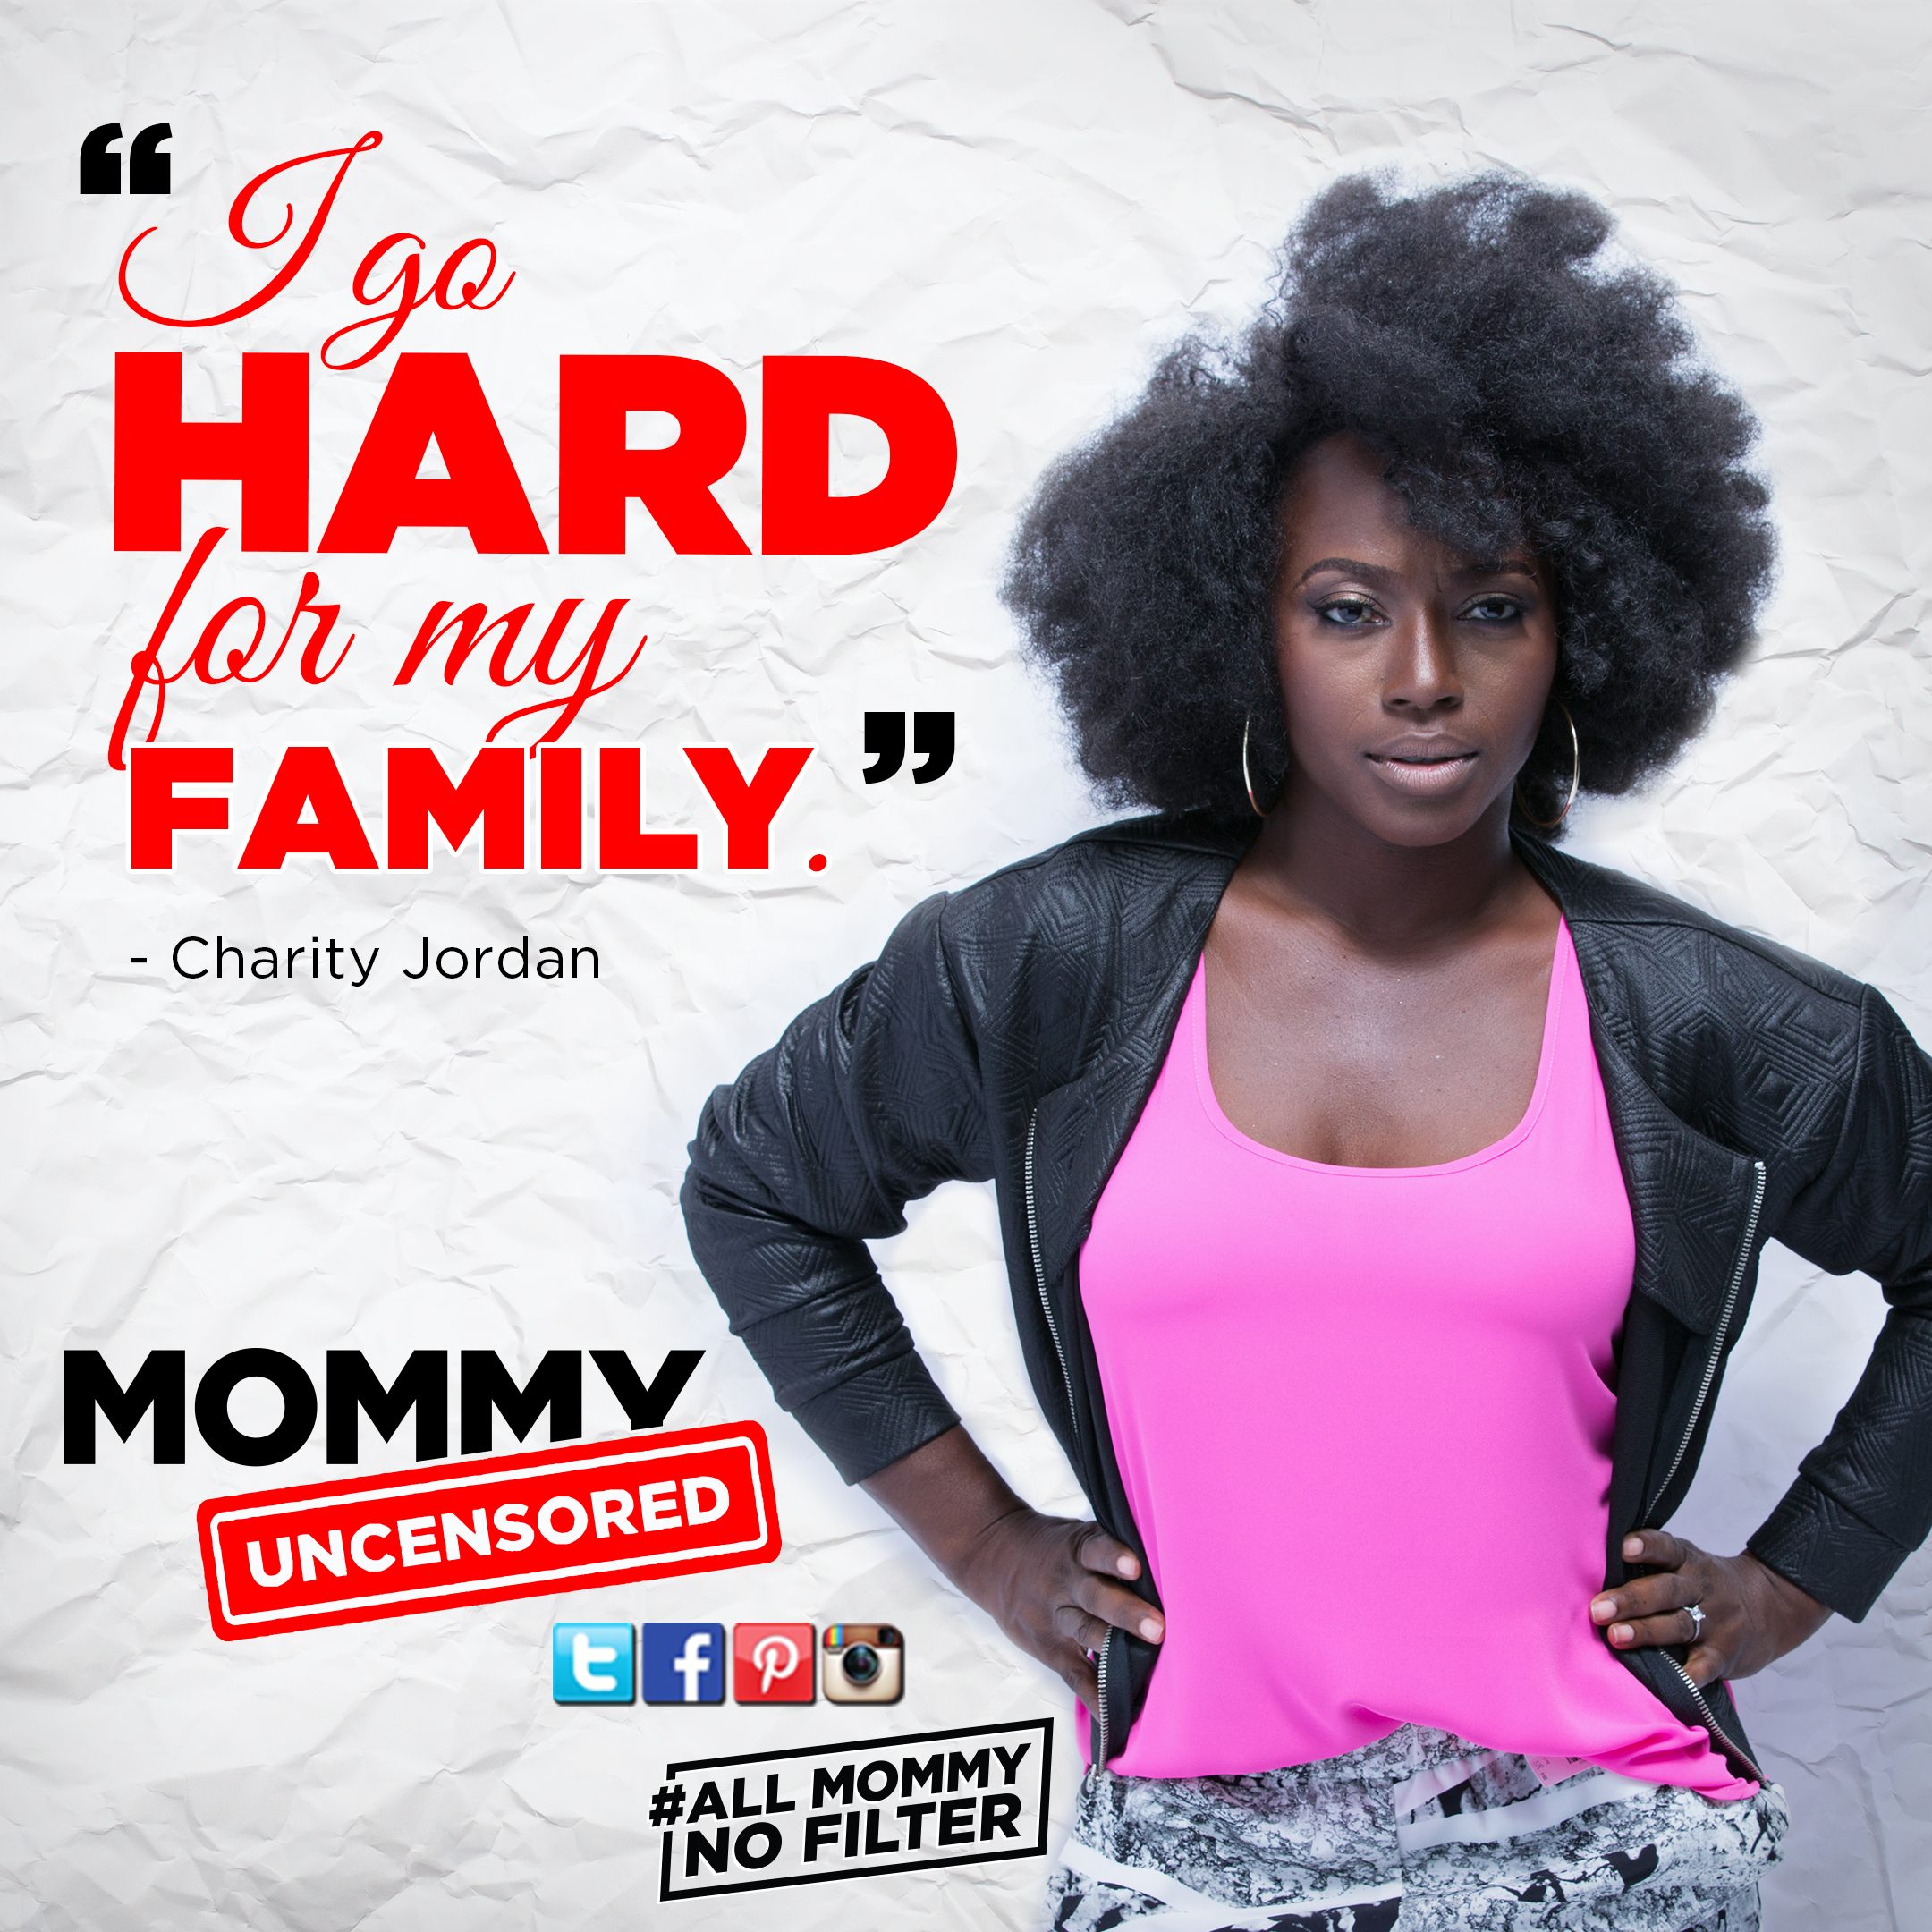 Go-Hard-for-my-Family-Quote